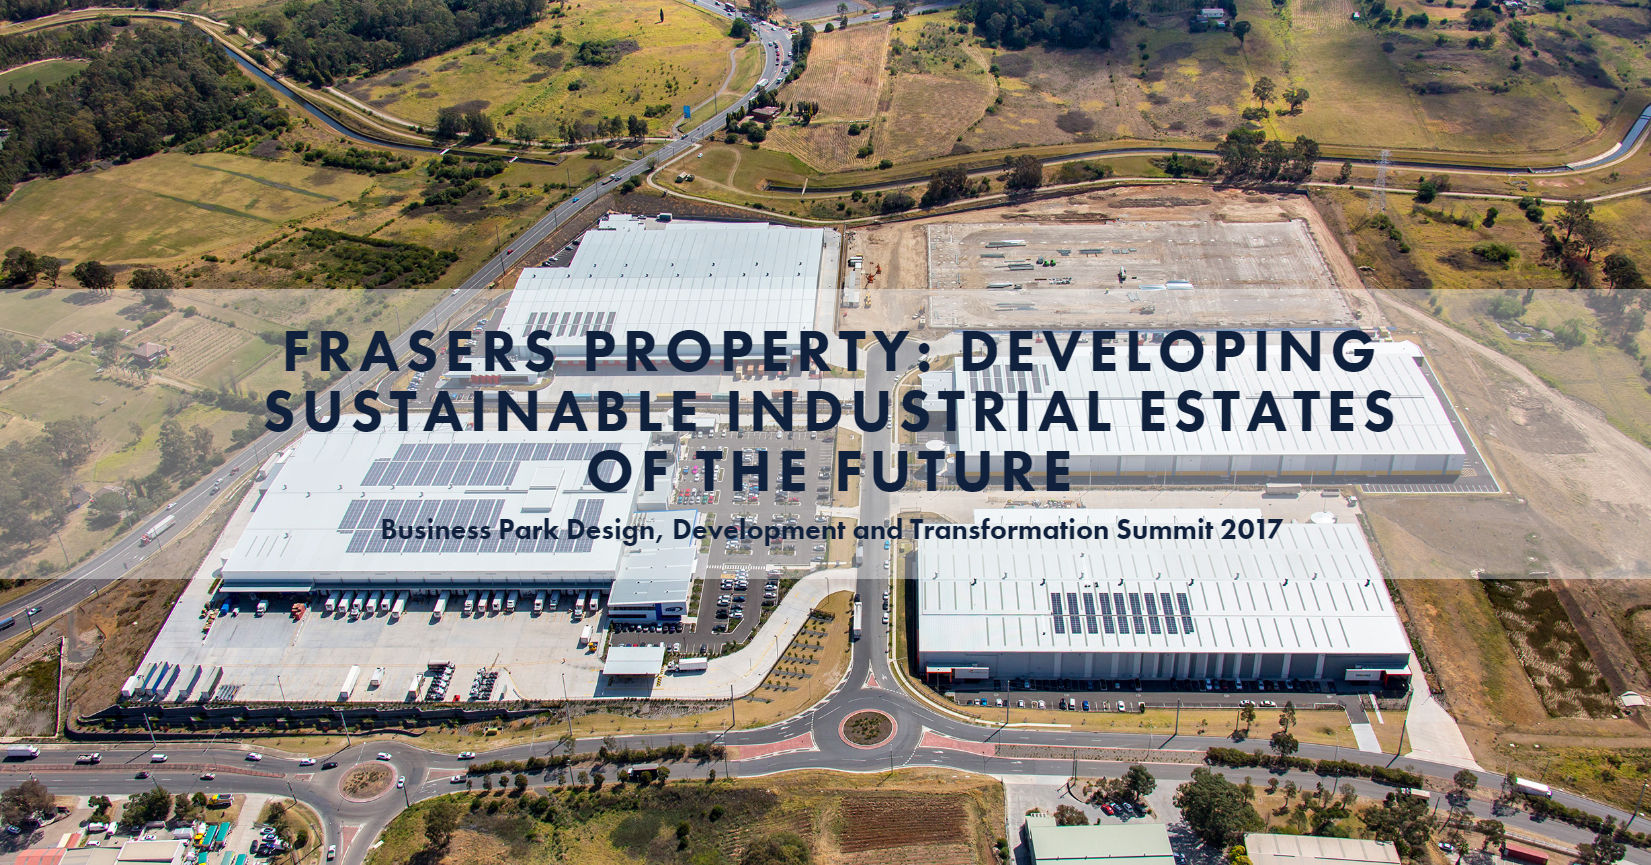 Frasers Property Australia: Developing Sustainable Industrial Estates  for the Future